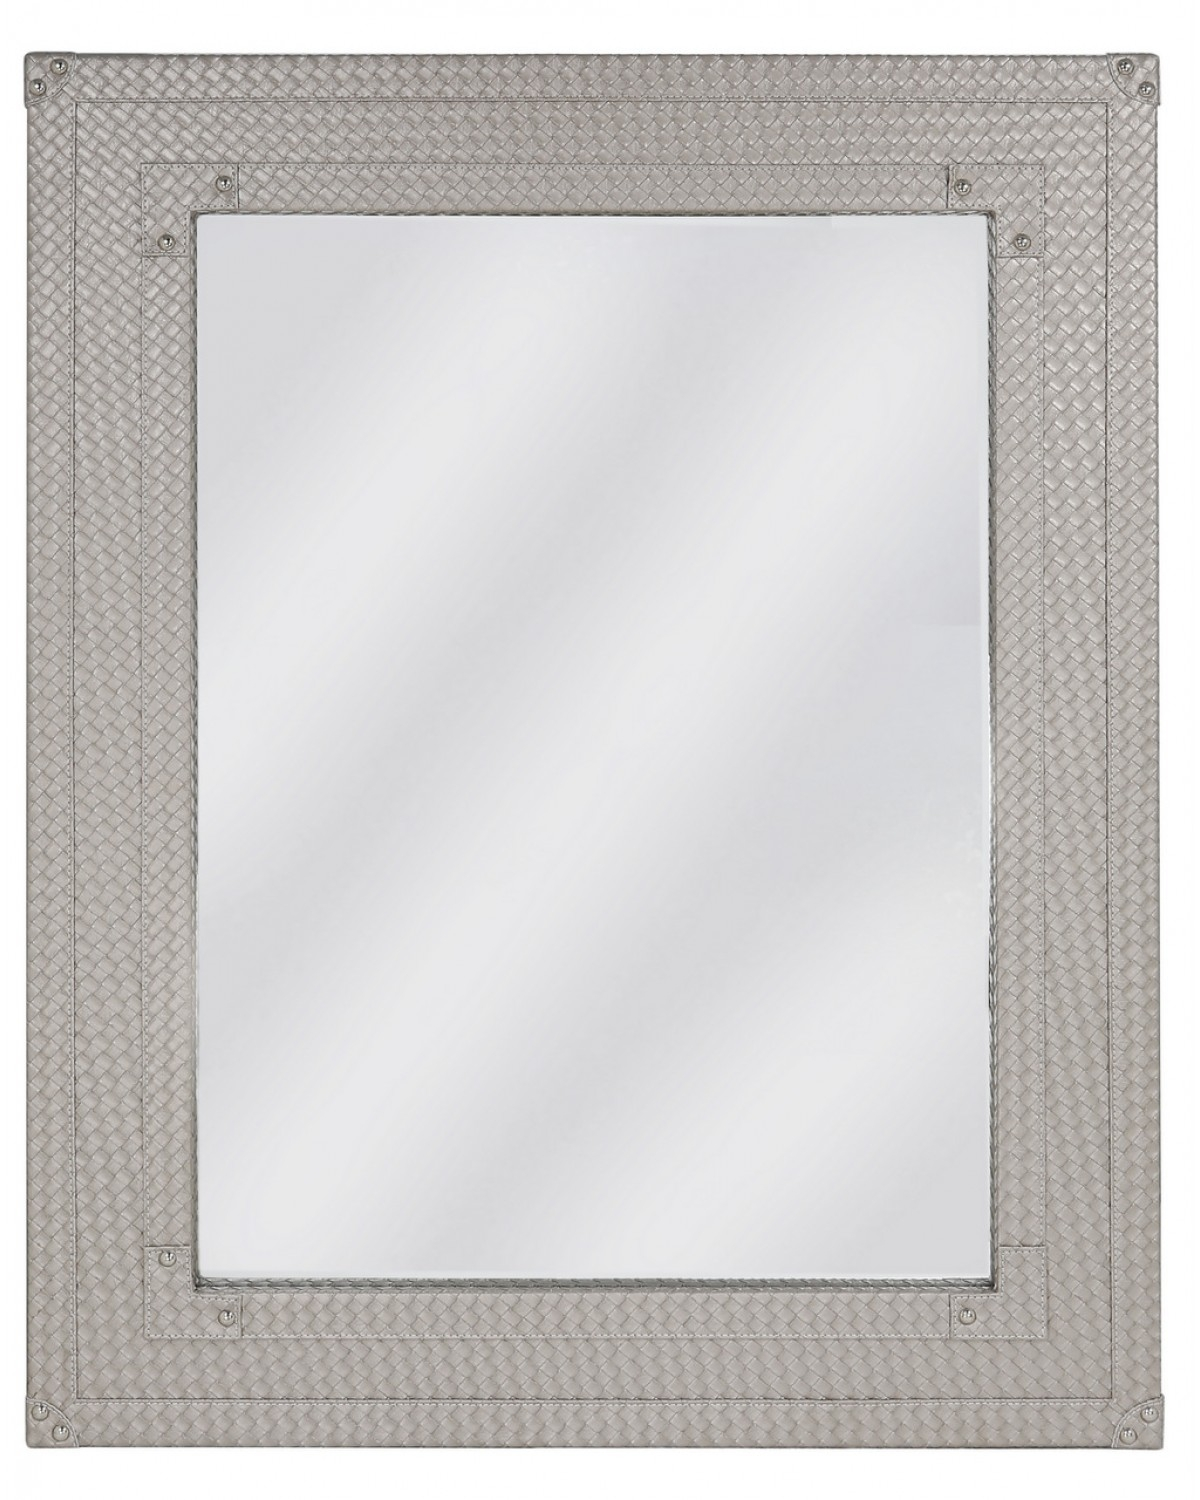 Fermo Faux Leather Bardot LIght Weave Beveled Wall Mirror